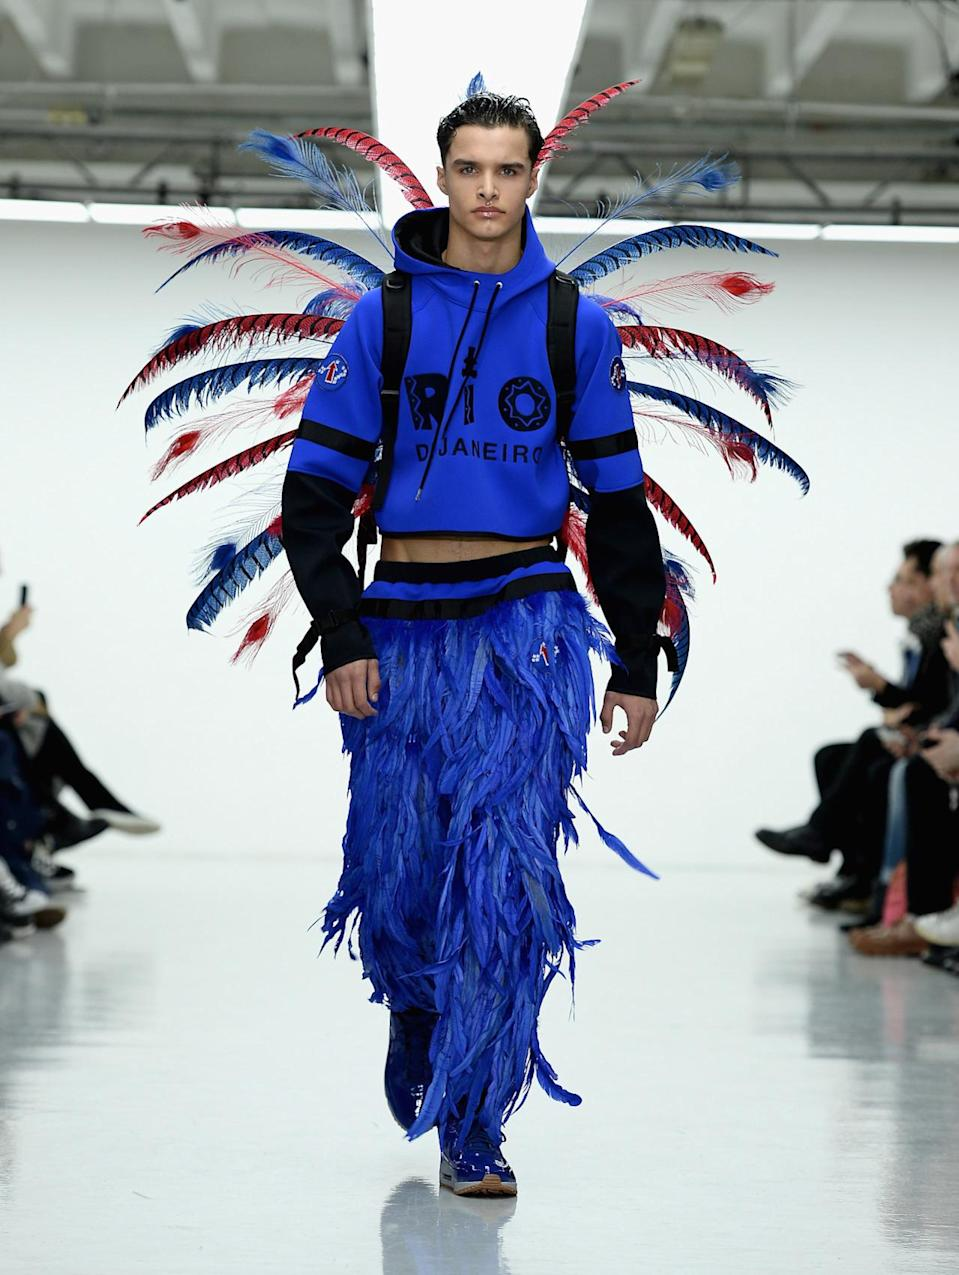 "<p>For his Fall 2016 collection, Abley was inspired by Brazil, particularly the coastal city of Rio de Janeiro. This translated to full-on, low-slung feather pants and a backpack also adorned with plumes. Based on this look we're guessing that another possible inspiration might have been the <a href=""https://www.yahoo.com/style/victoria-secret-fashion-show-2015-212906514.html"" data-ylk=""slk:Victoria's Secret runway show;outcm:mb_qualified_link;_E:mb_qualified_link;ct:story;"" class=""link rapid-noclick-resp yahoo-link"">Victoria's Secret runway show</a>. <i>Photo: Getty Images </i></p>"